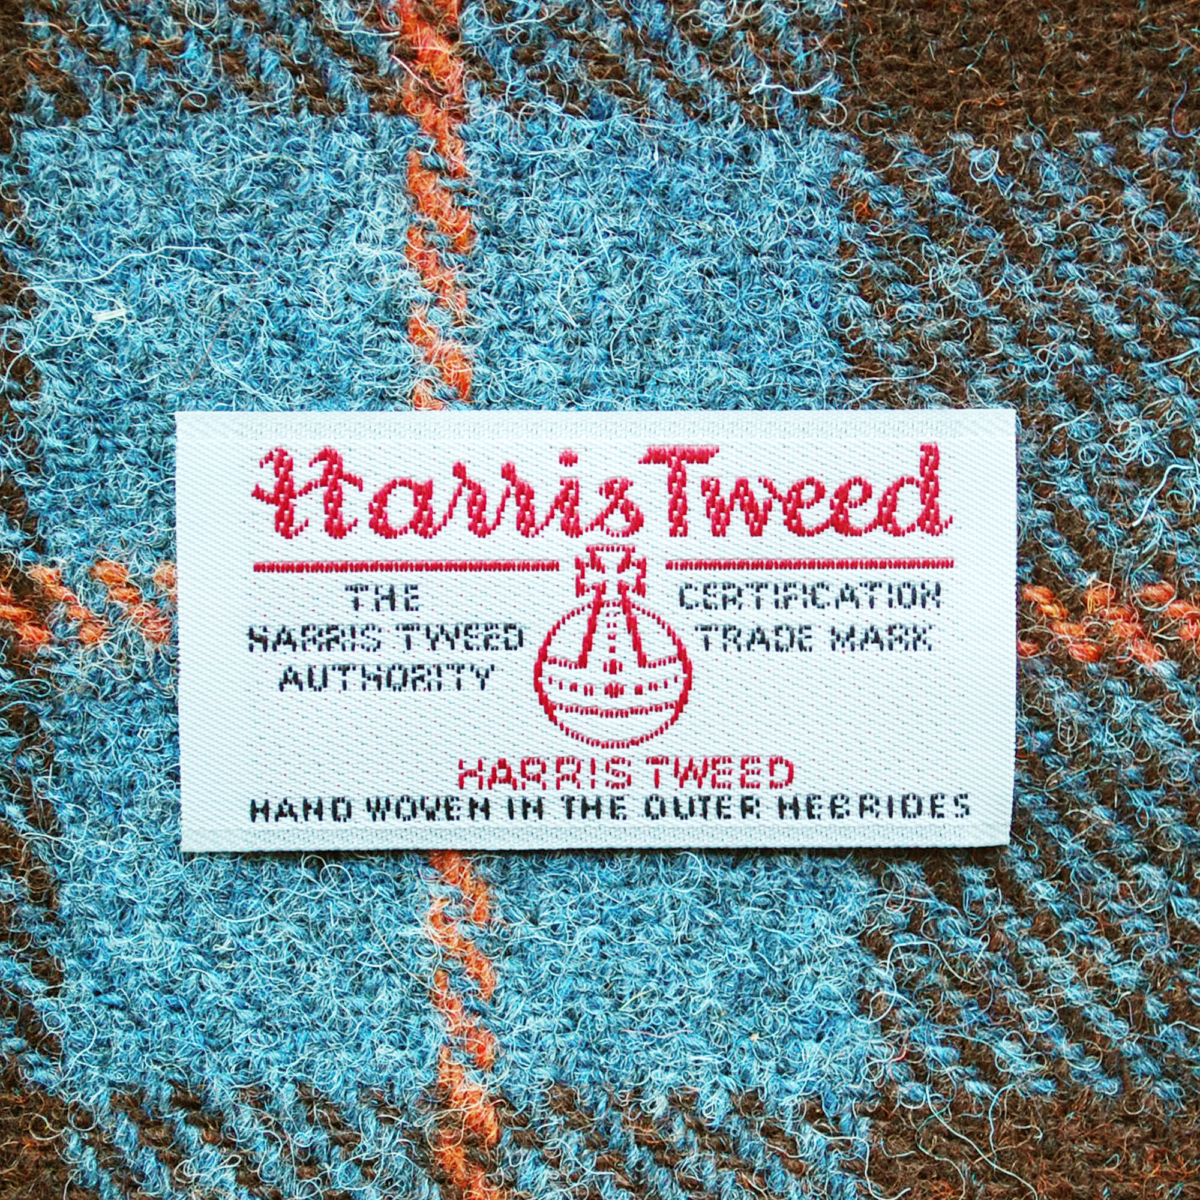 https://www.telescopestyle.com/wp-content/uploads/2019/03/Brown-check-harris-tweed-lamp-shade-detail-telescope-style.png